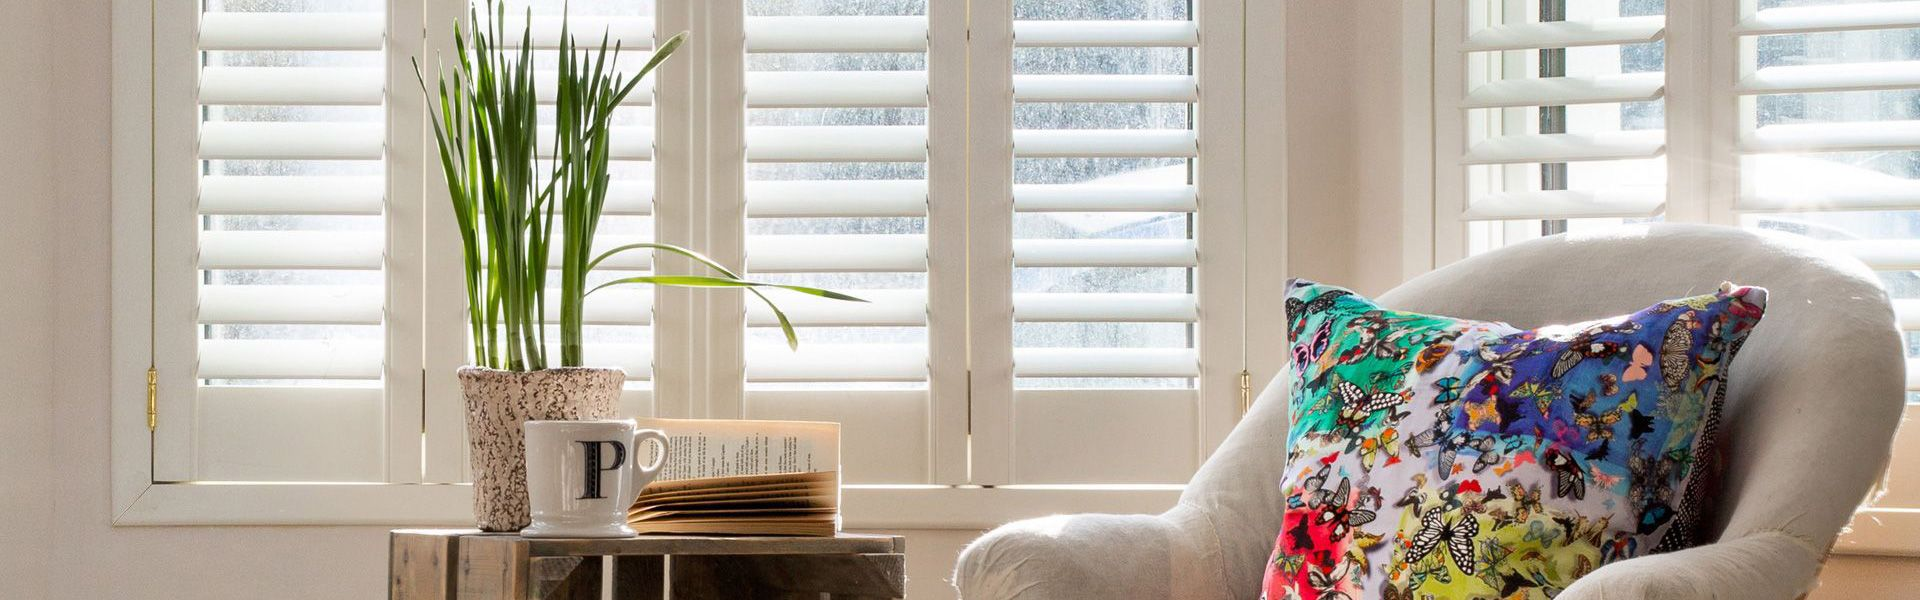 Craftwood MDF Shutters by Plantation Shutters Ltd